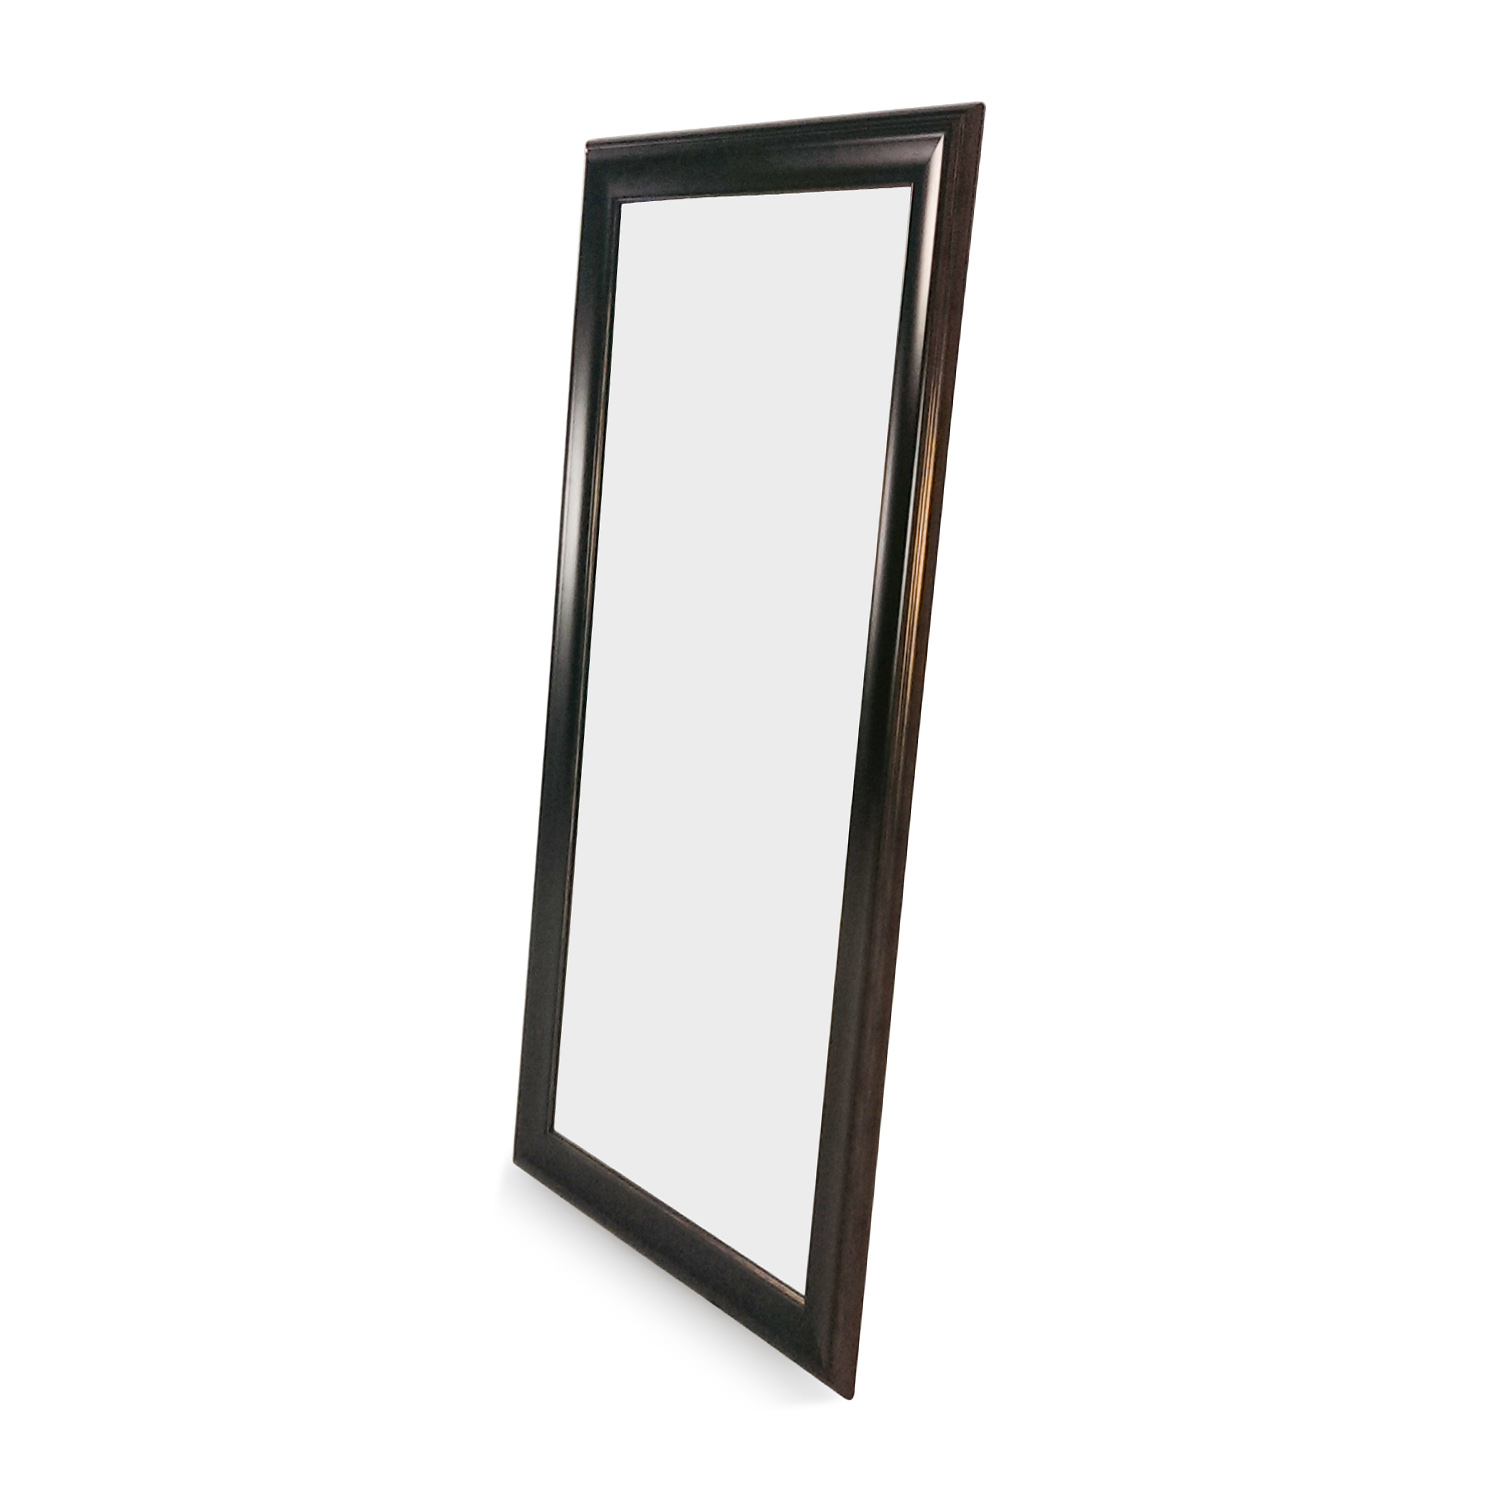 Large 5 Foot Mirror Mirrors